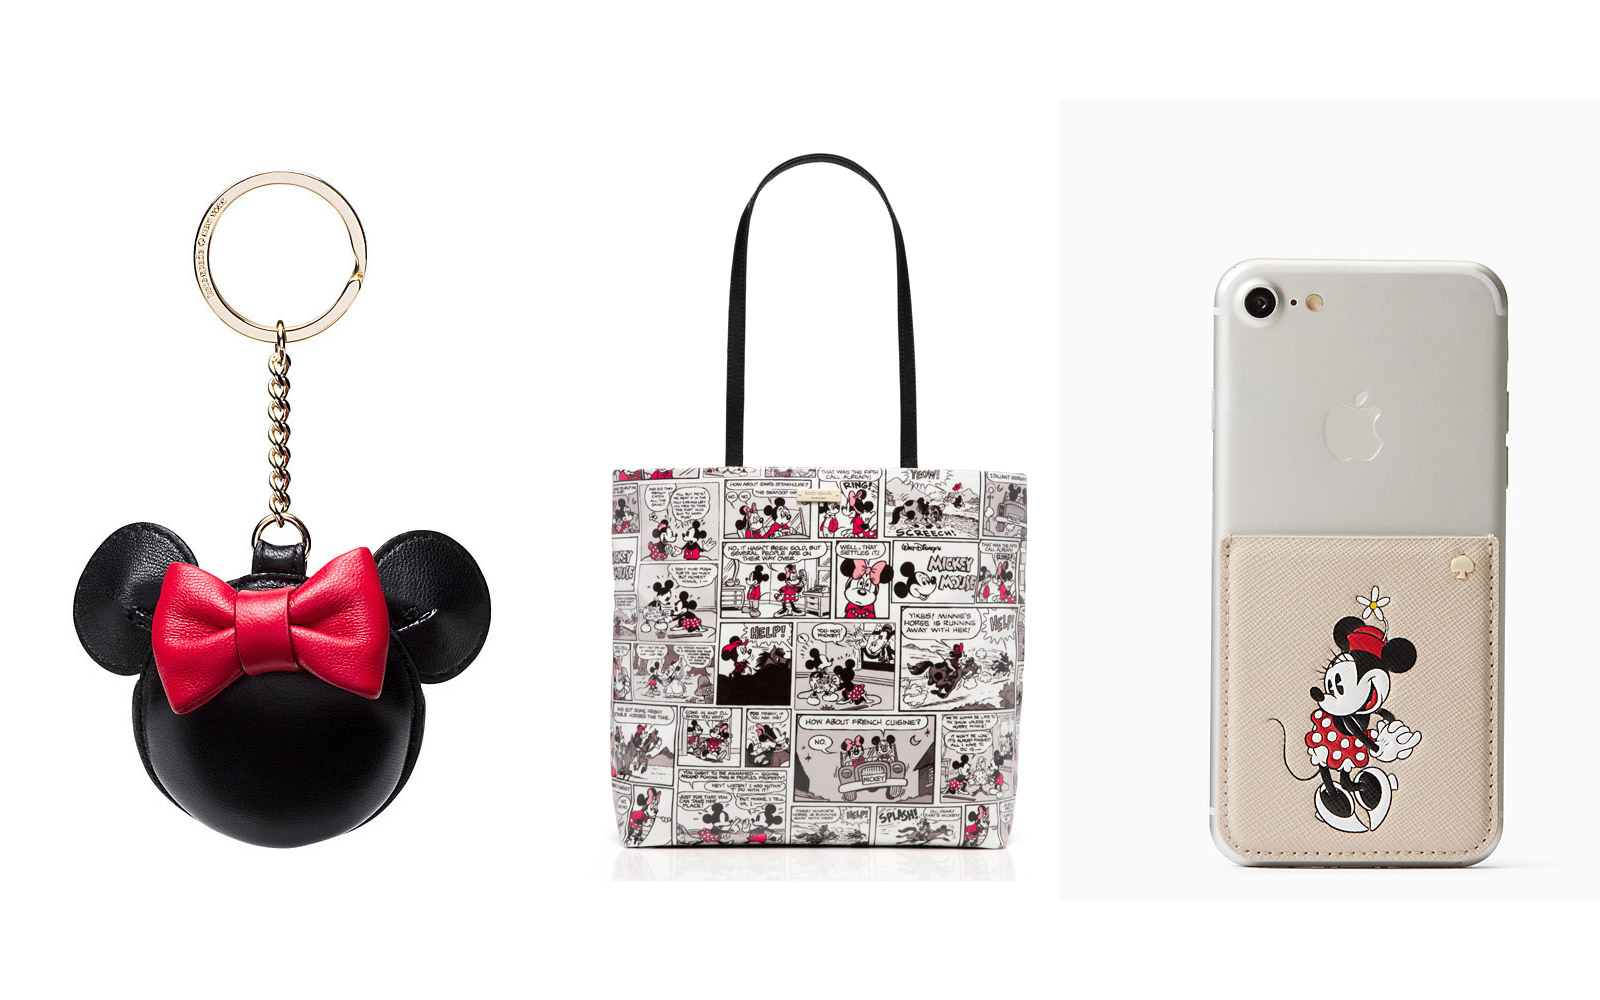 Collection of Kate Spade's new Minnie Mouse collection